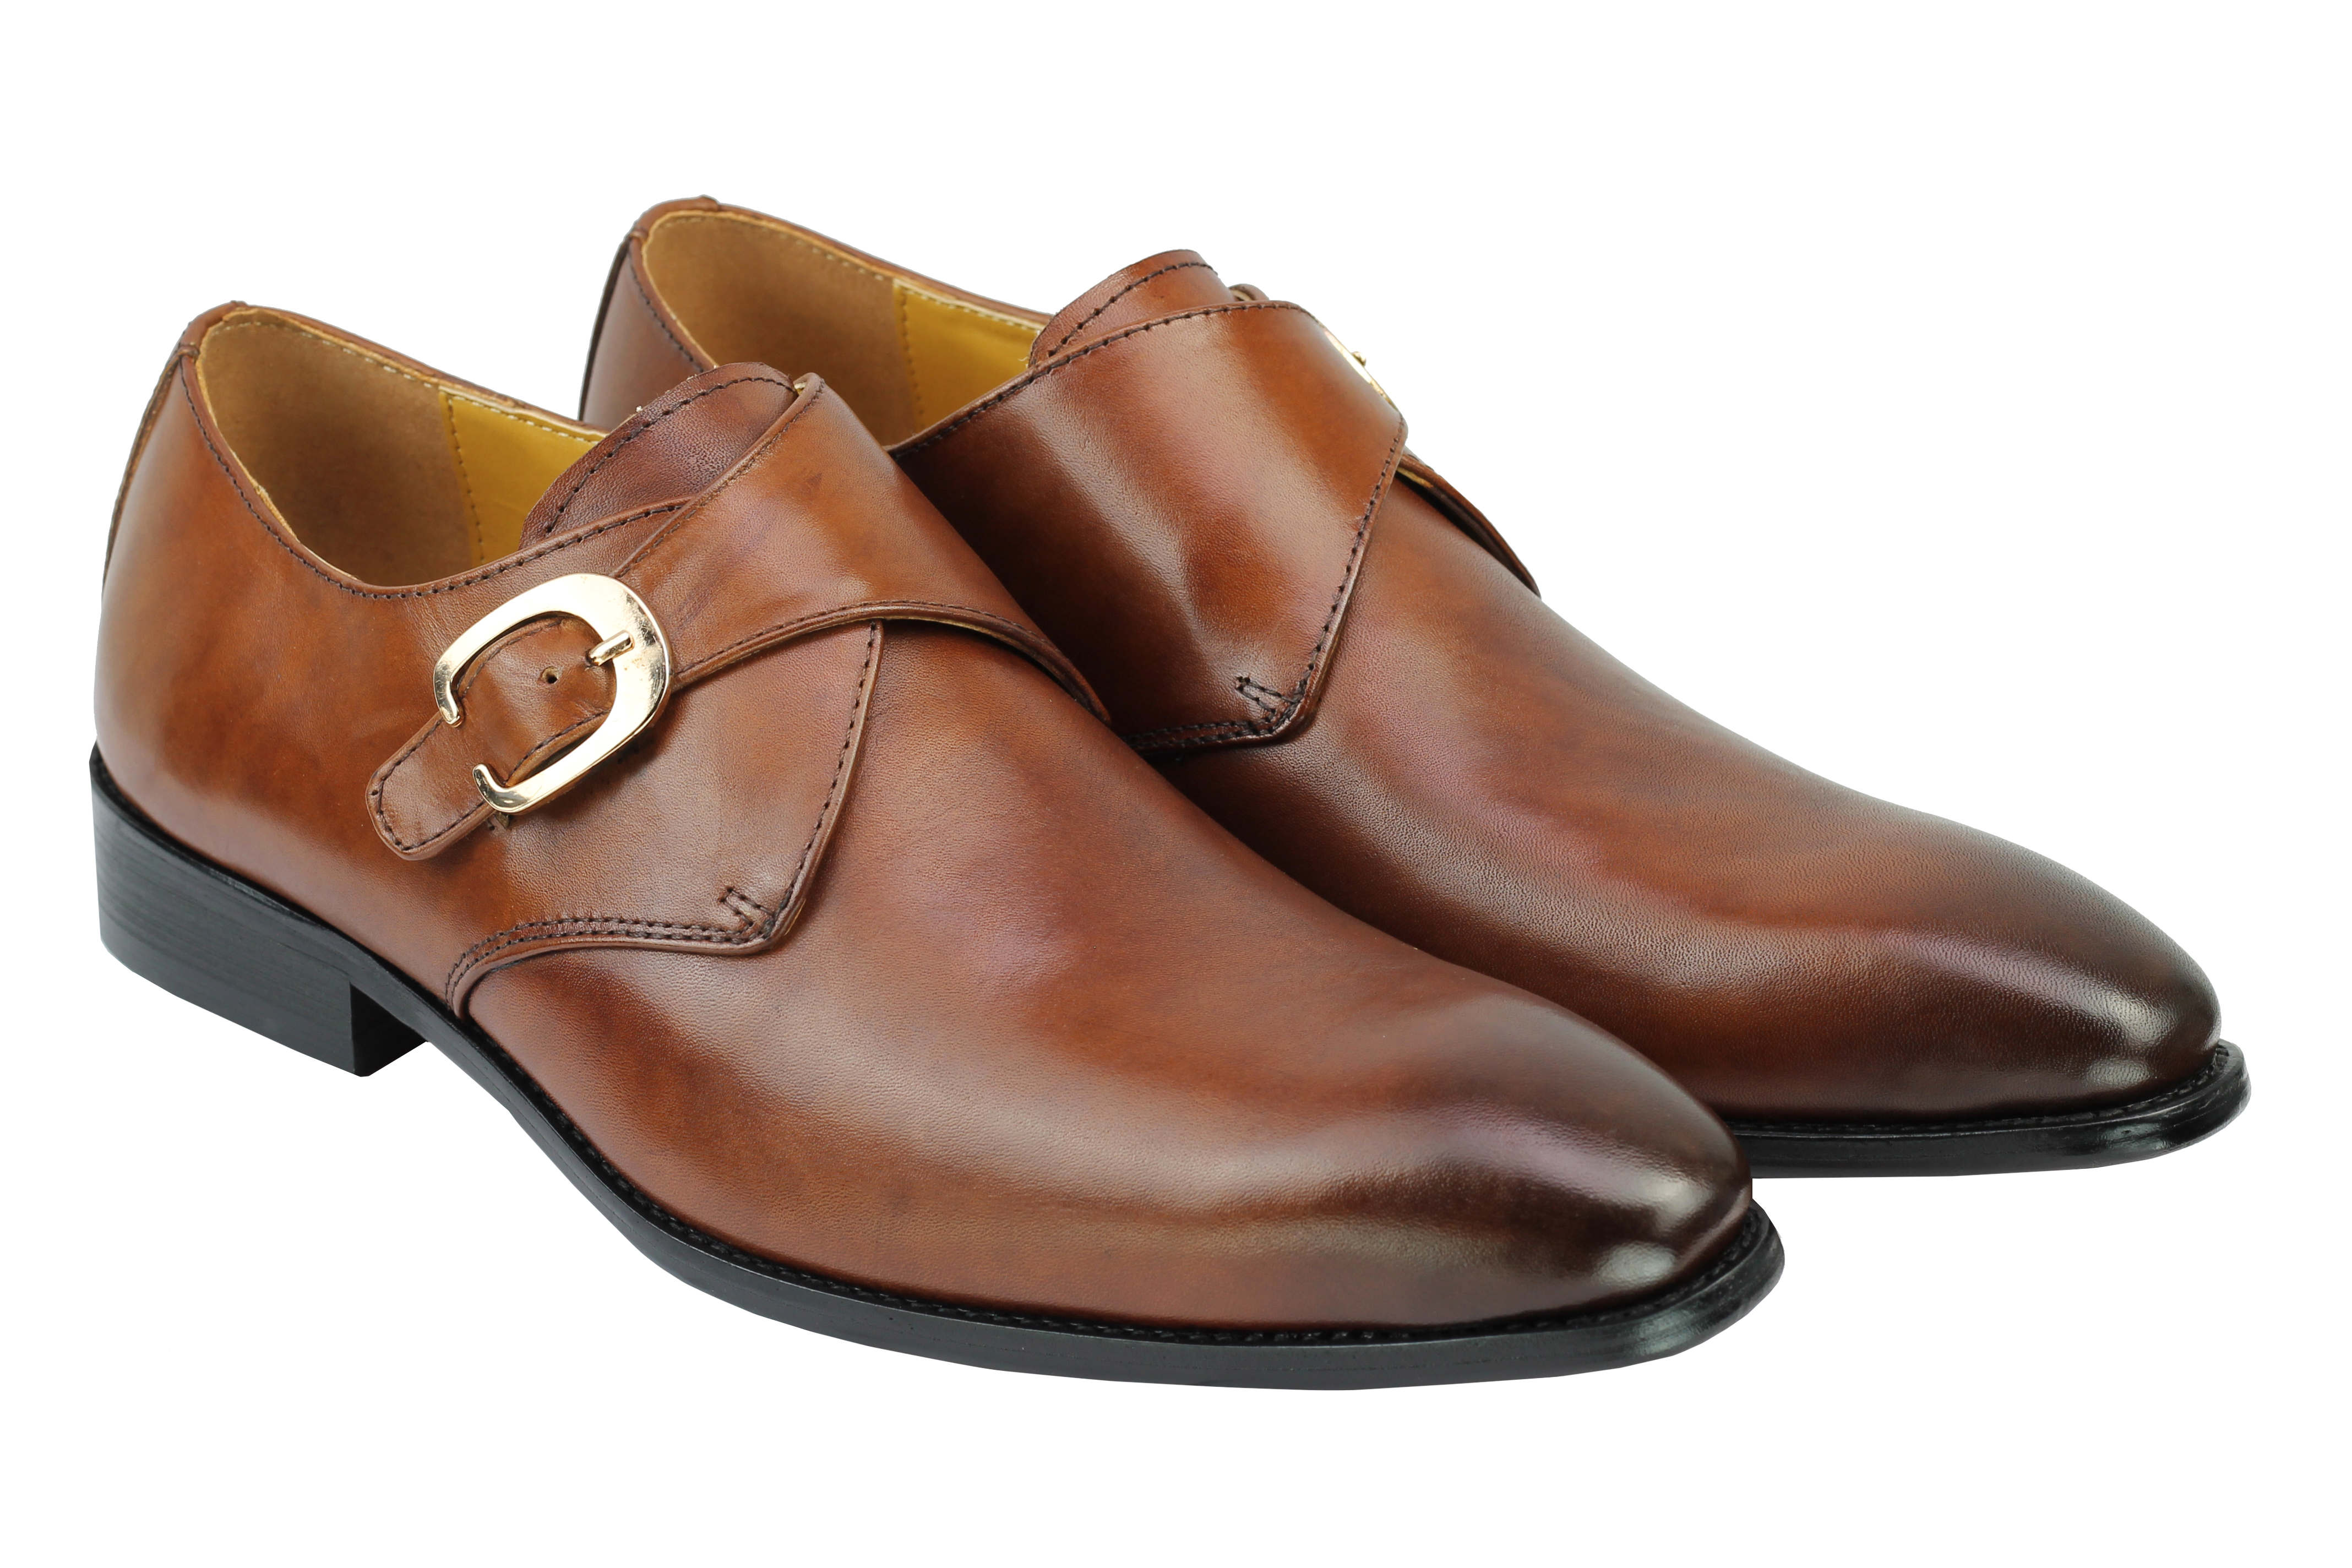 Mens Monk Strap Oxford Loafers Polished Genuine Leather Smart Office Dress Shoes